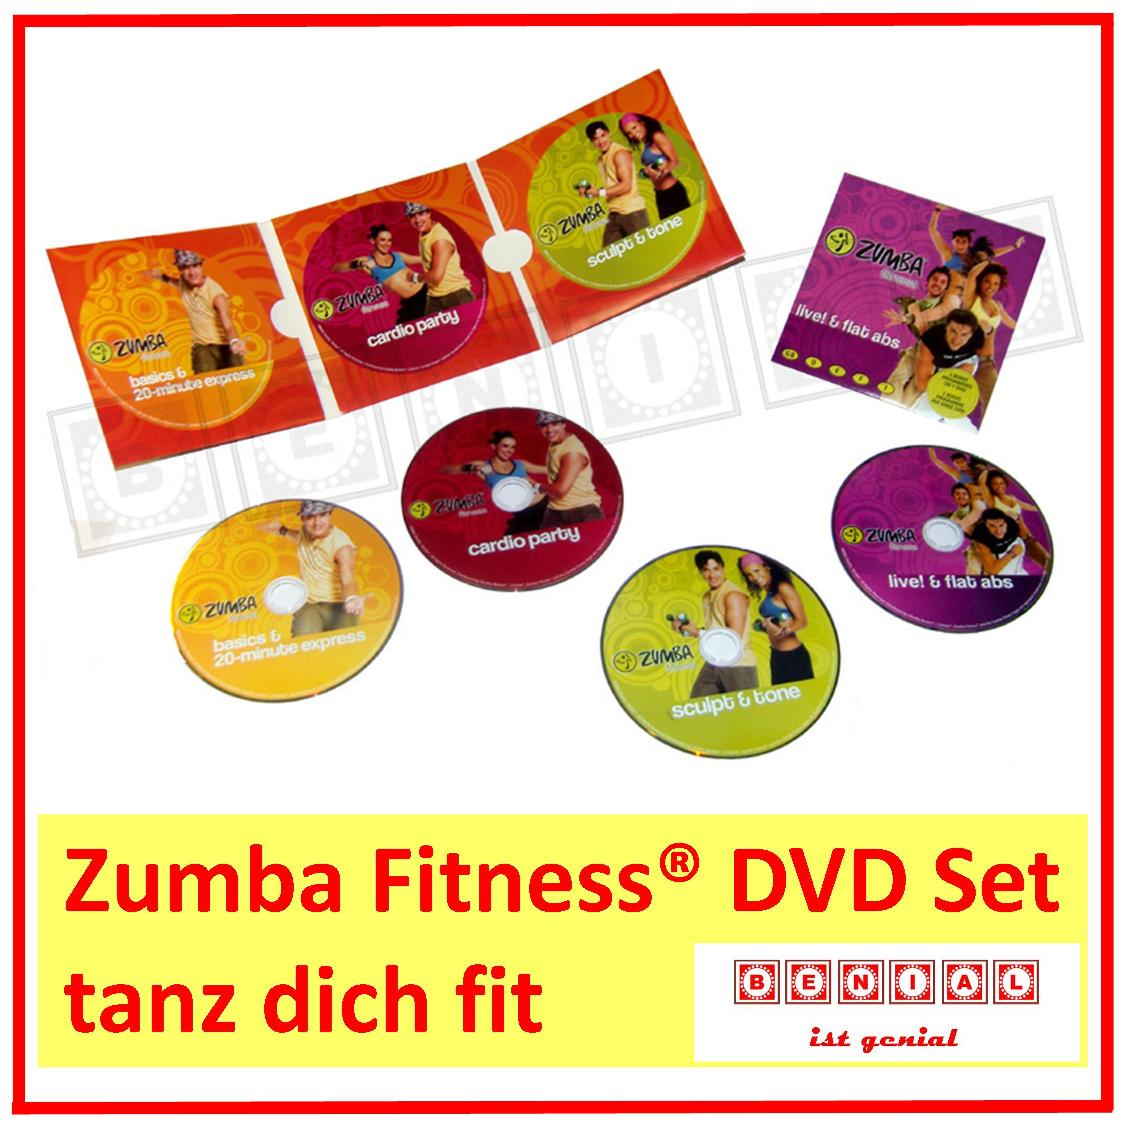 Zumba-Fitness-DVD-Programm-Set-4x-DVD-Party-amp-Tanz-Fitness-DVD-Training-TOP-WOW